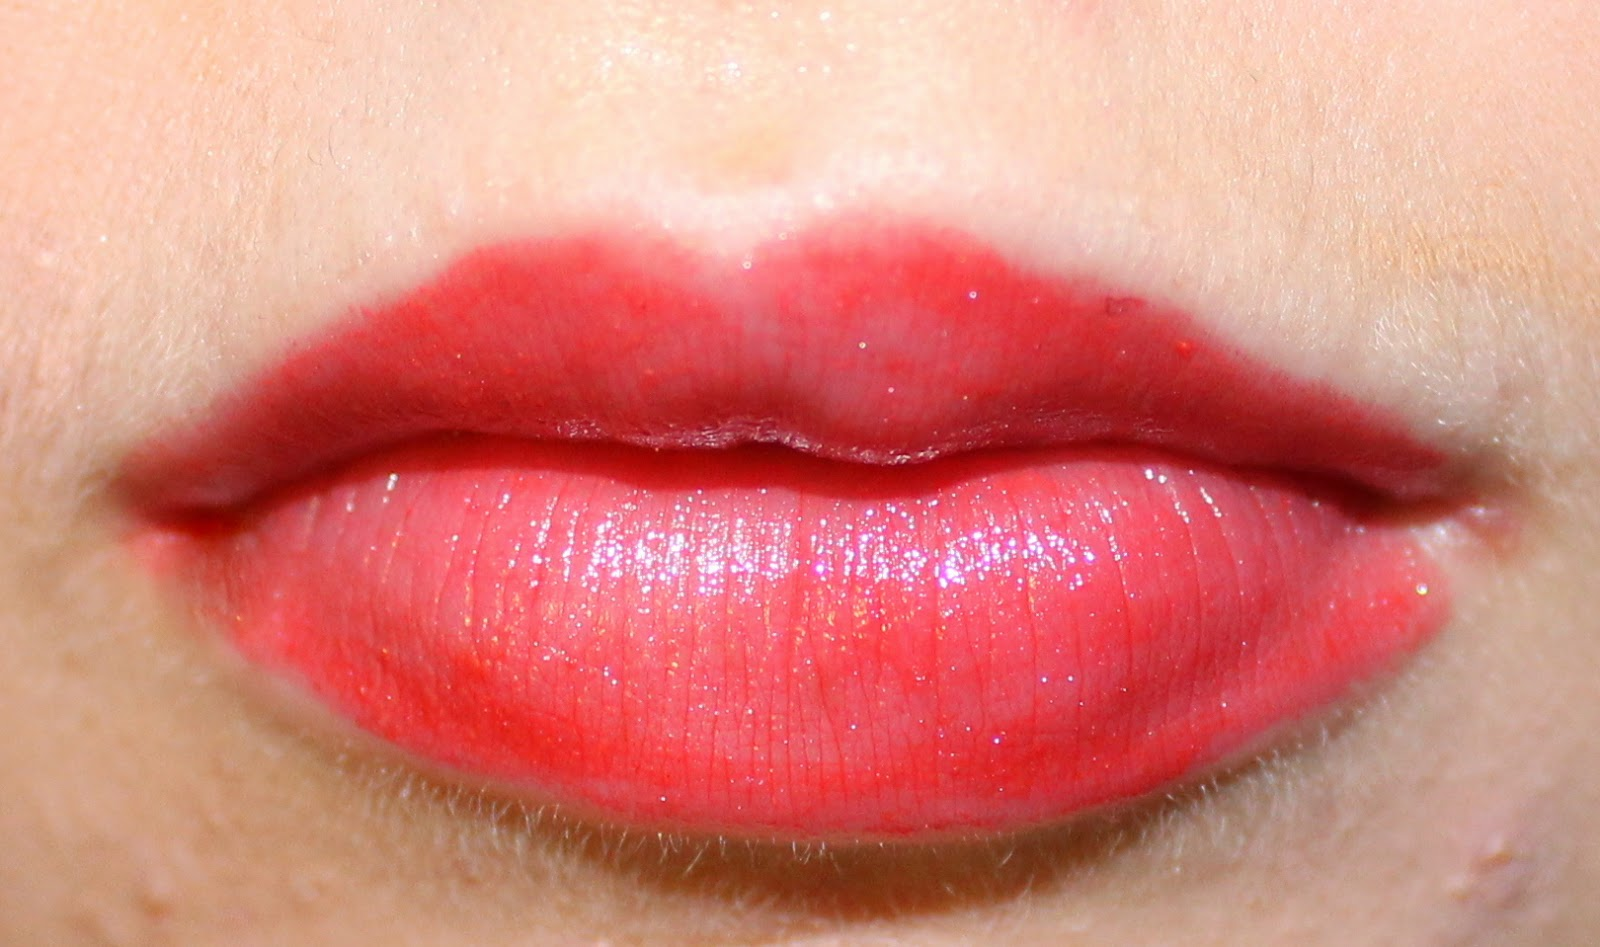 ARTDECO Glossy Lip Color in Glossy Strawberry on Lips